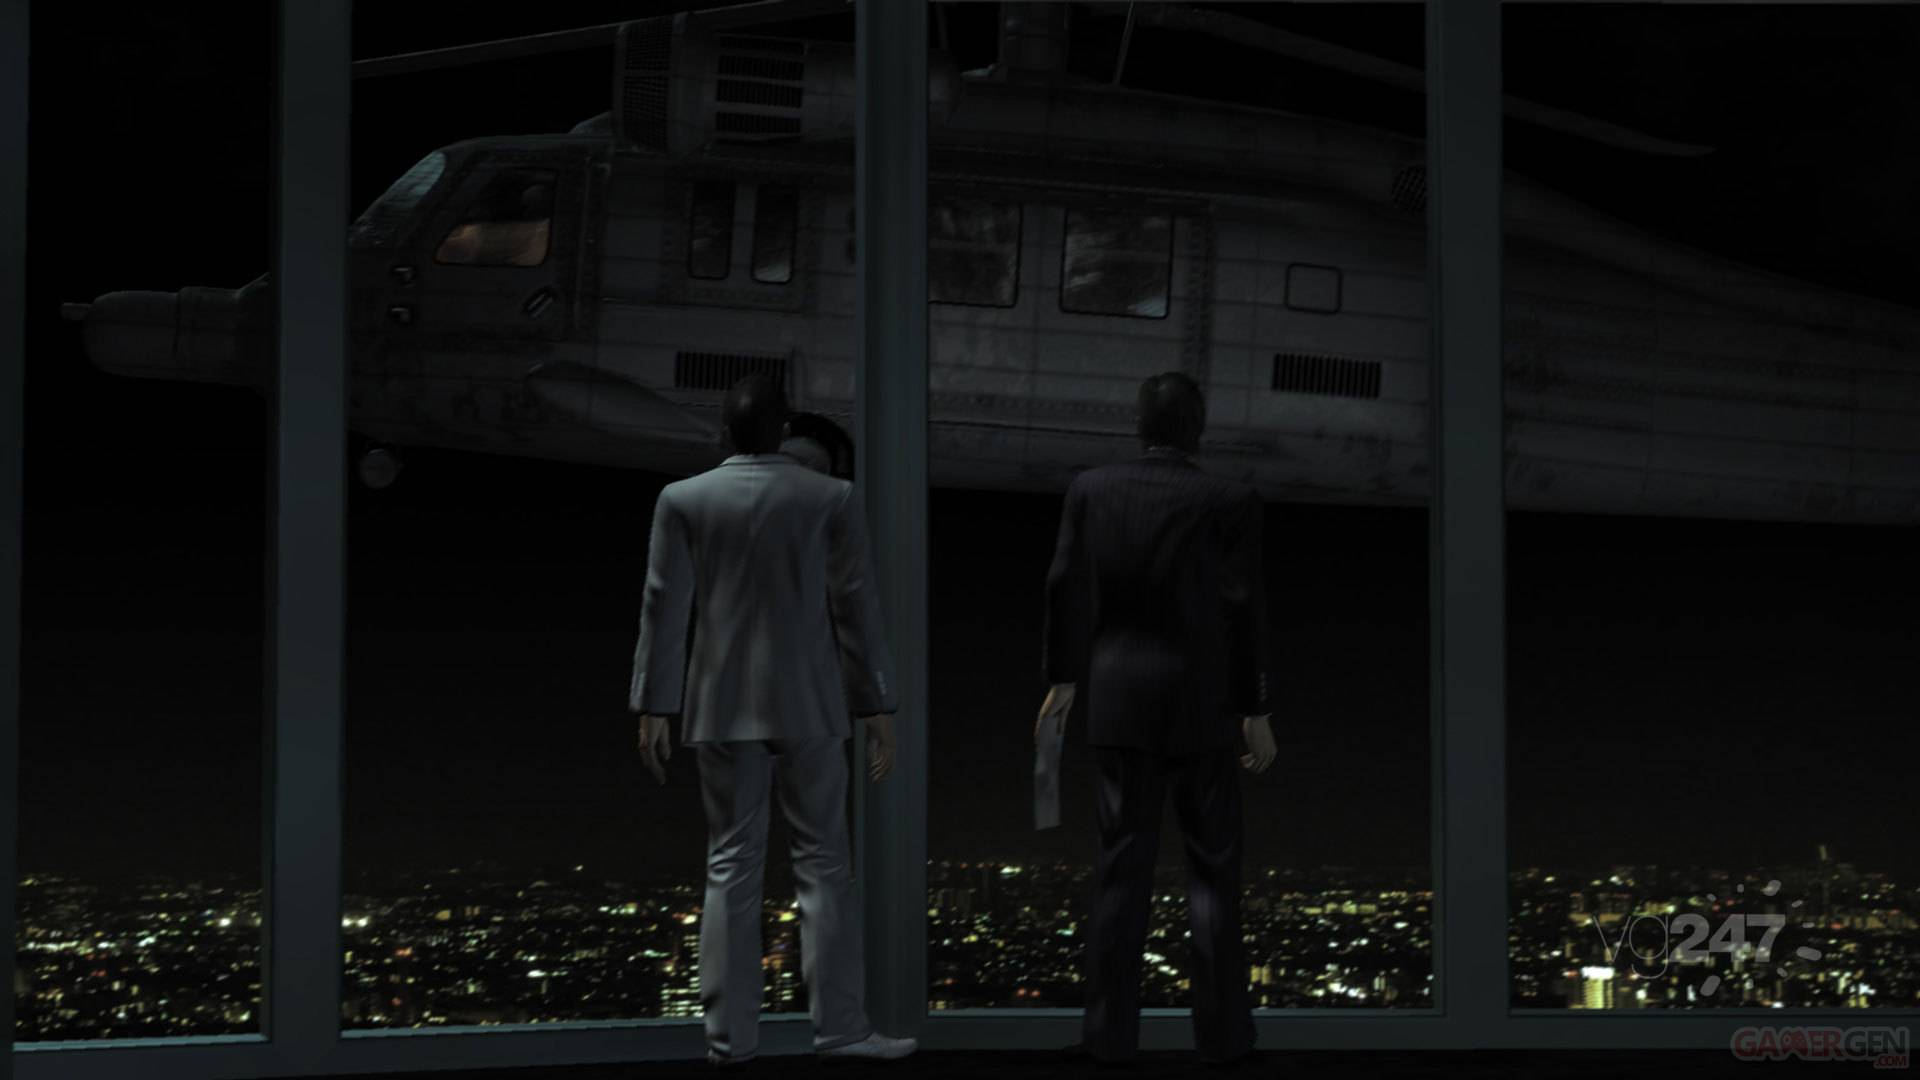 yakuza_3 Yakuza_3-PS3Screenshots19696Y3_JAN_Online_Screen_8